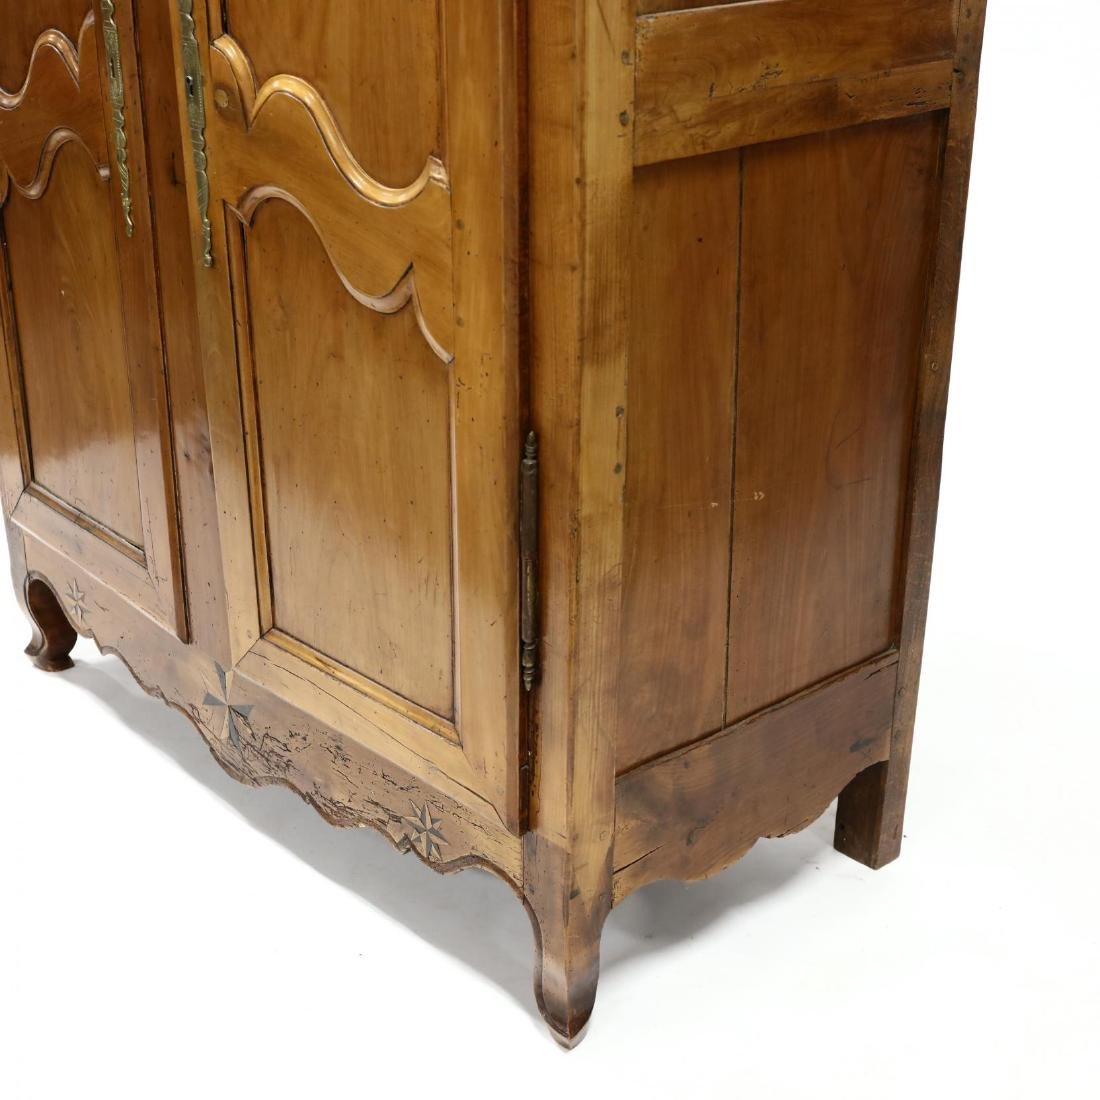 Antique French Provincial Inlaid Cherry Armoire - 2